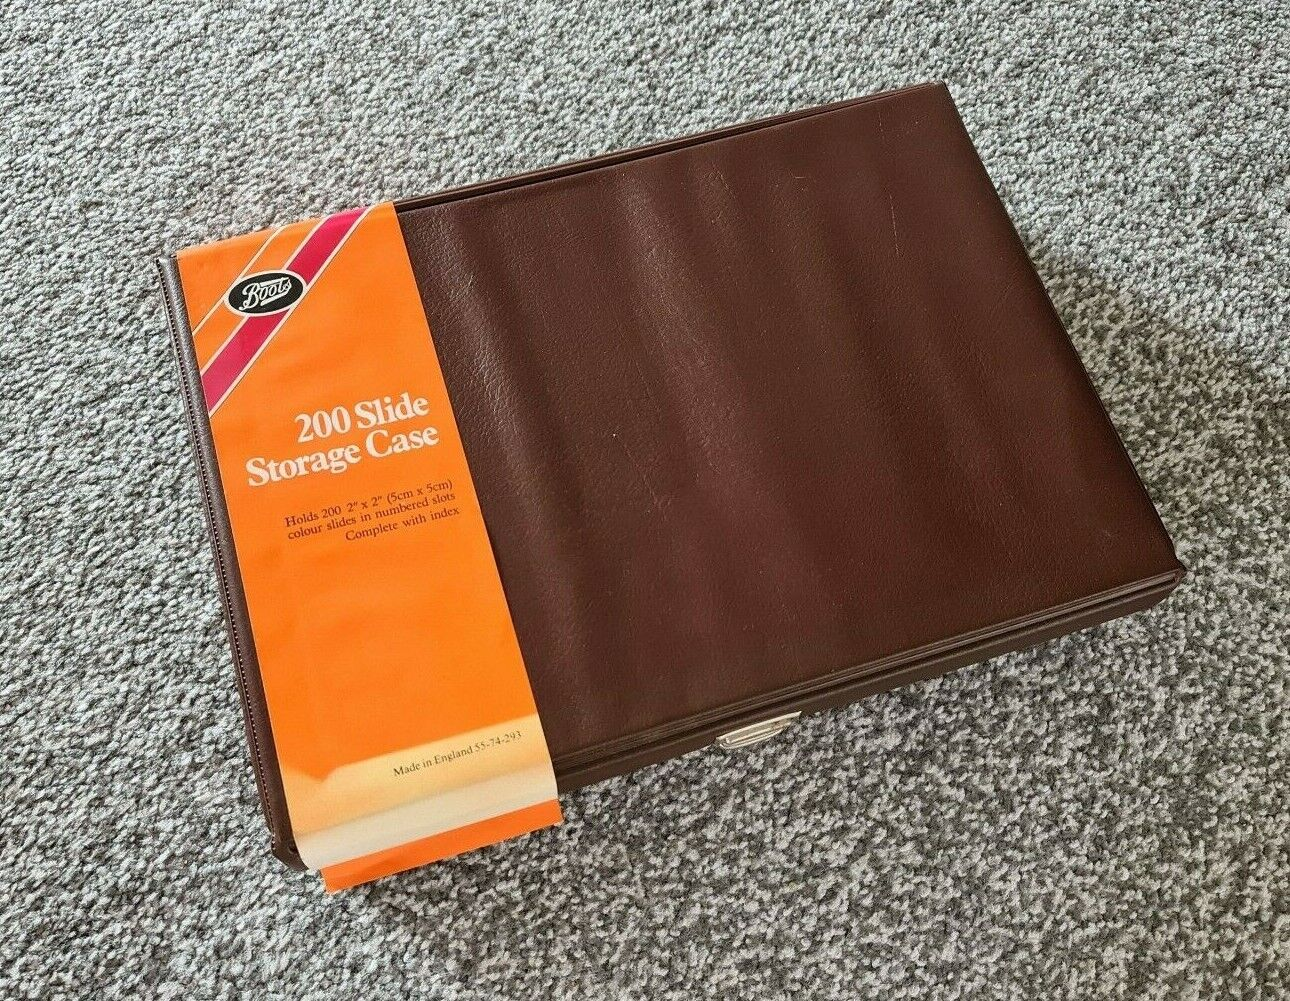 Retro Boots 200 Slide Storage Case, for 5x5 Slides, Made in England